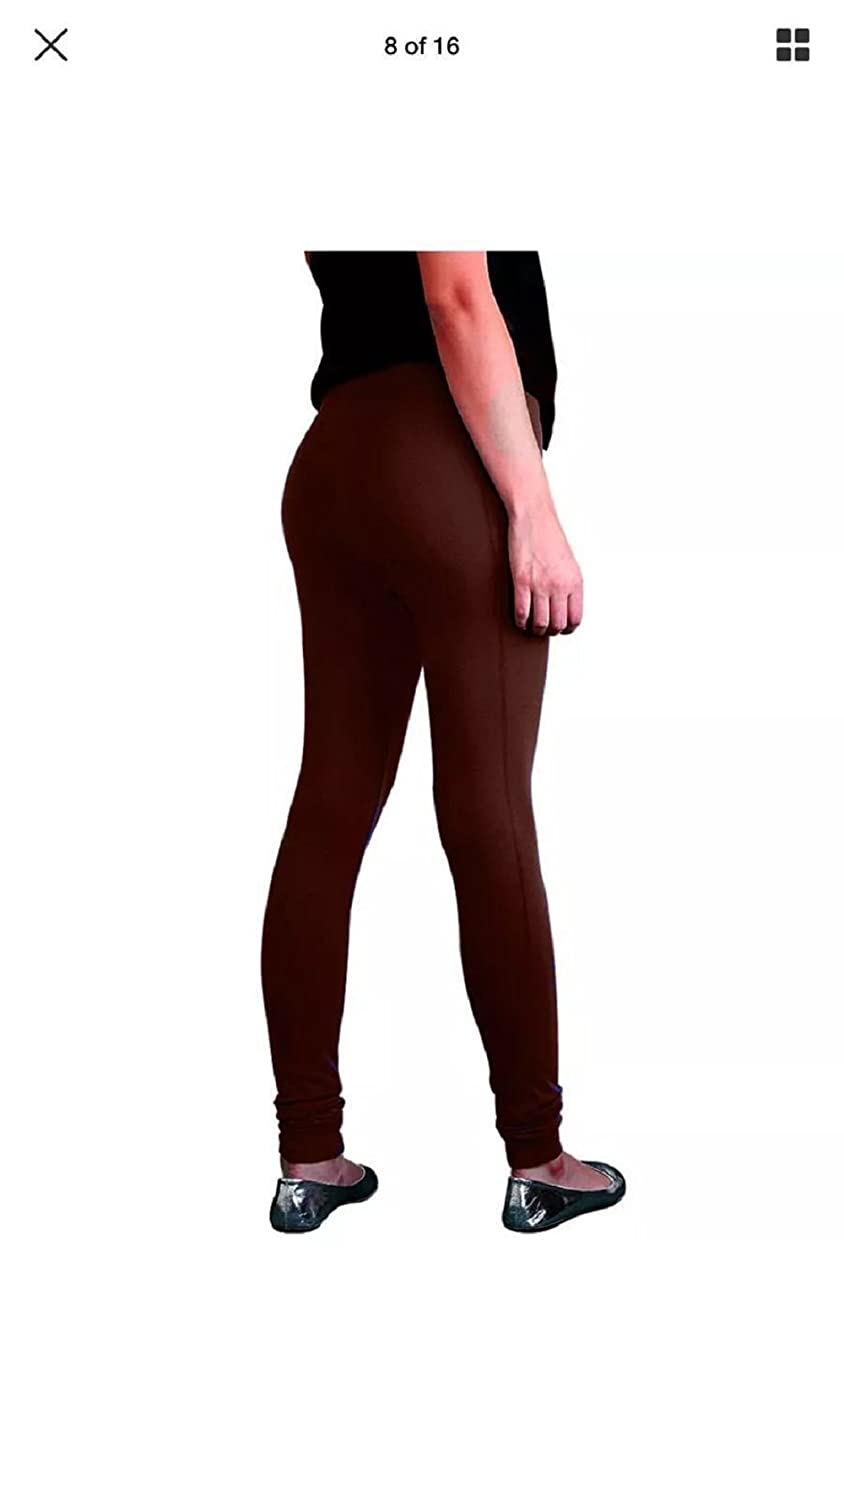 METLUQ M0D4 Winter Thick Warm Cotton Leggings Full Length Sizes UK 8-26 Multi Colours